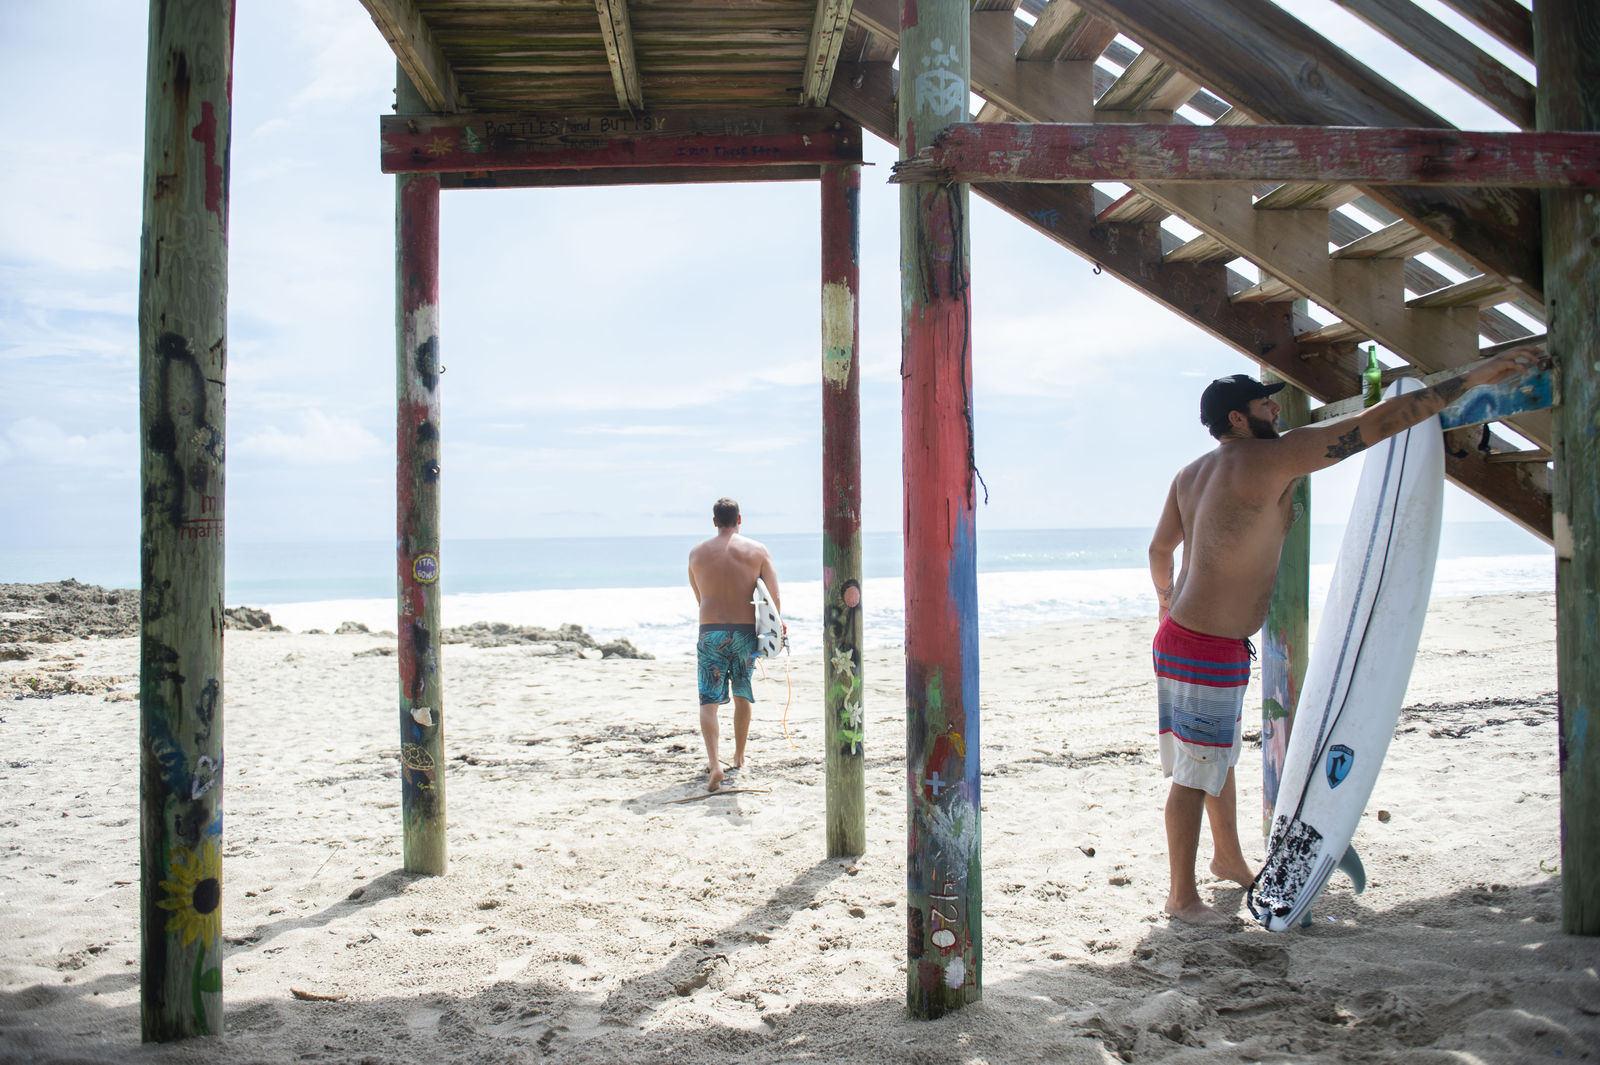 "Brothers Evan Miller, left, and Eric Hicks, both of Stuart, Fla., prepare to catch some waves ahead of Hurricane Dorian on Thursday, Aug. 29, 2019, at Chastain Beach on Hutchinson Island, Fla. ""Sunday or Monday looks like the days (for big waves), as soon as that wind goes into the west,"" Miller said.  (Leah Voss/TCPalm.com via AP)"